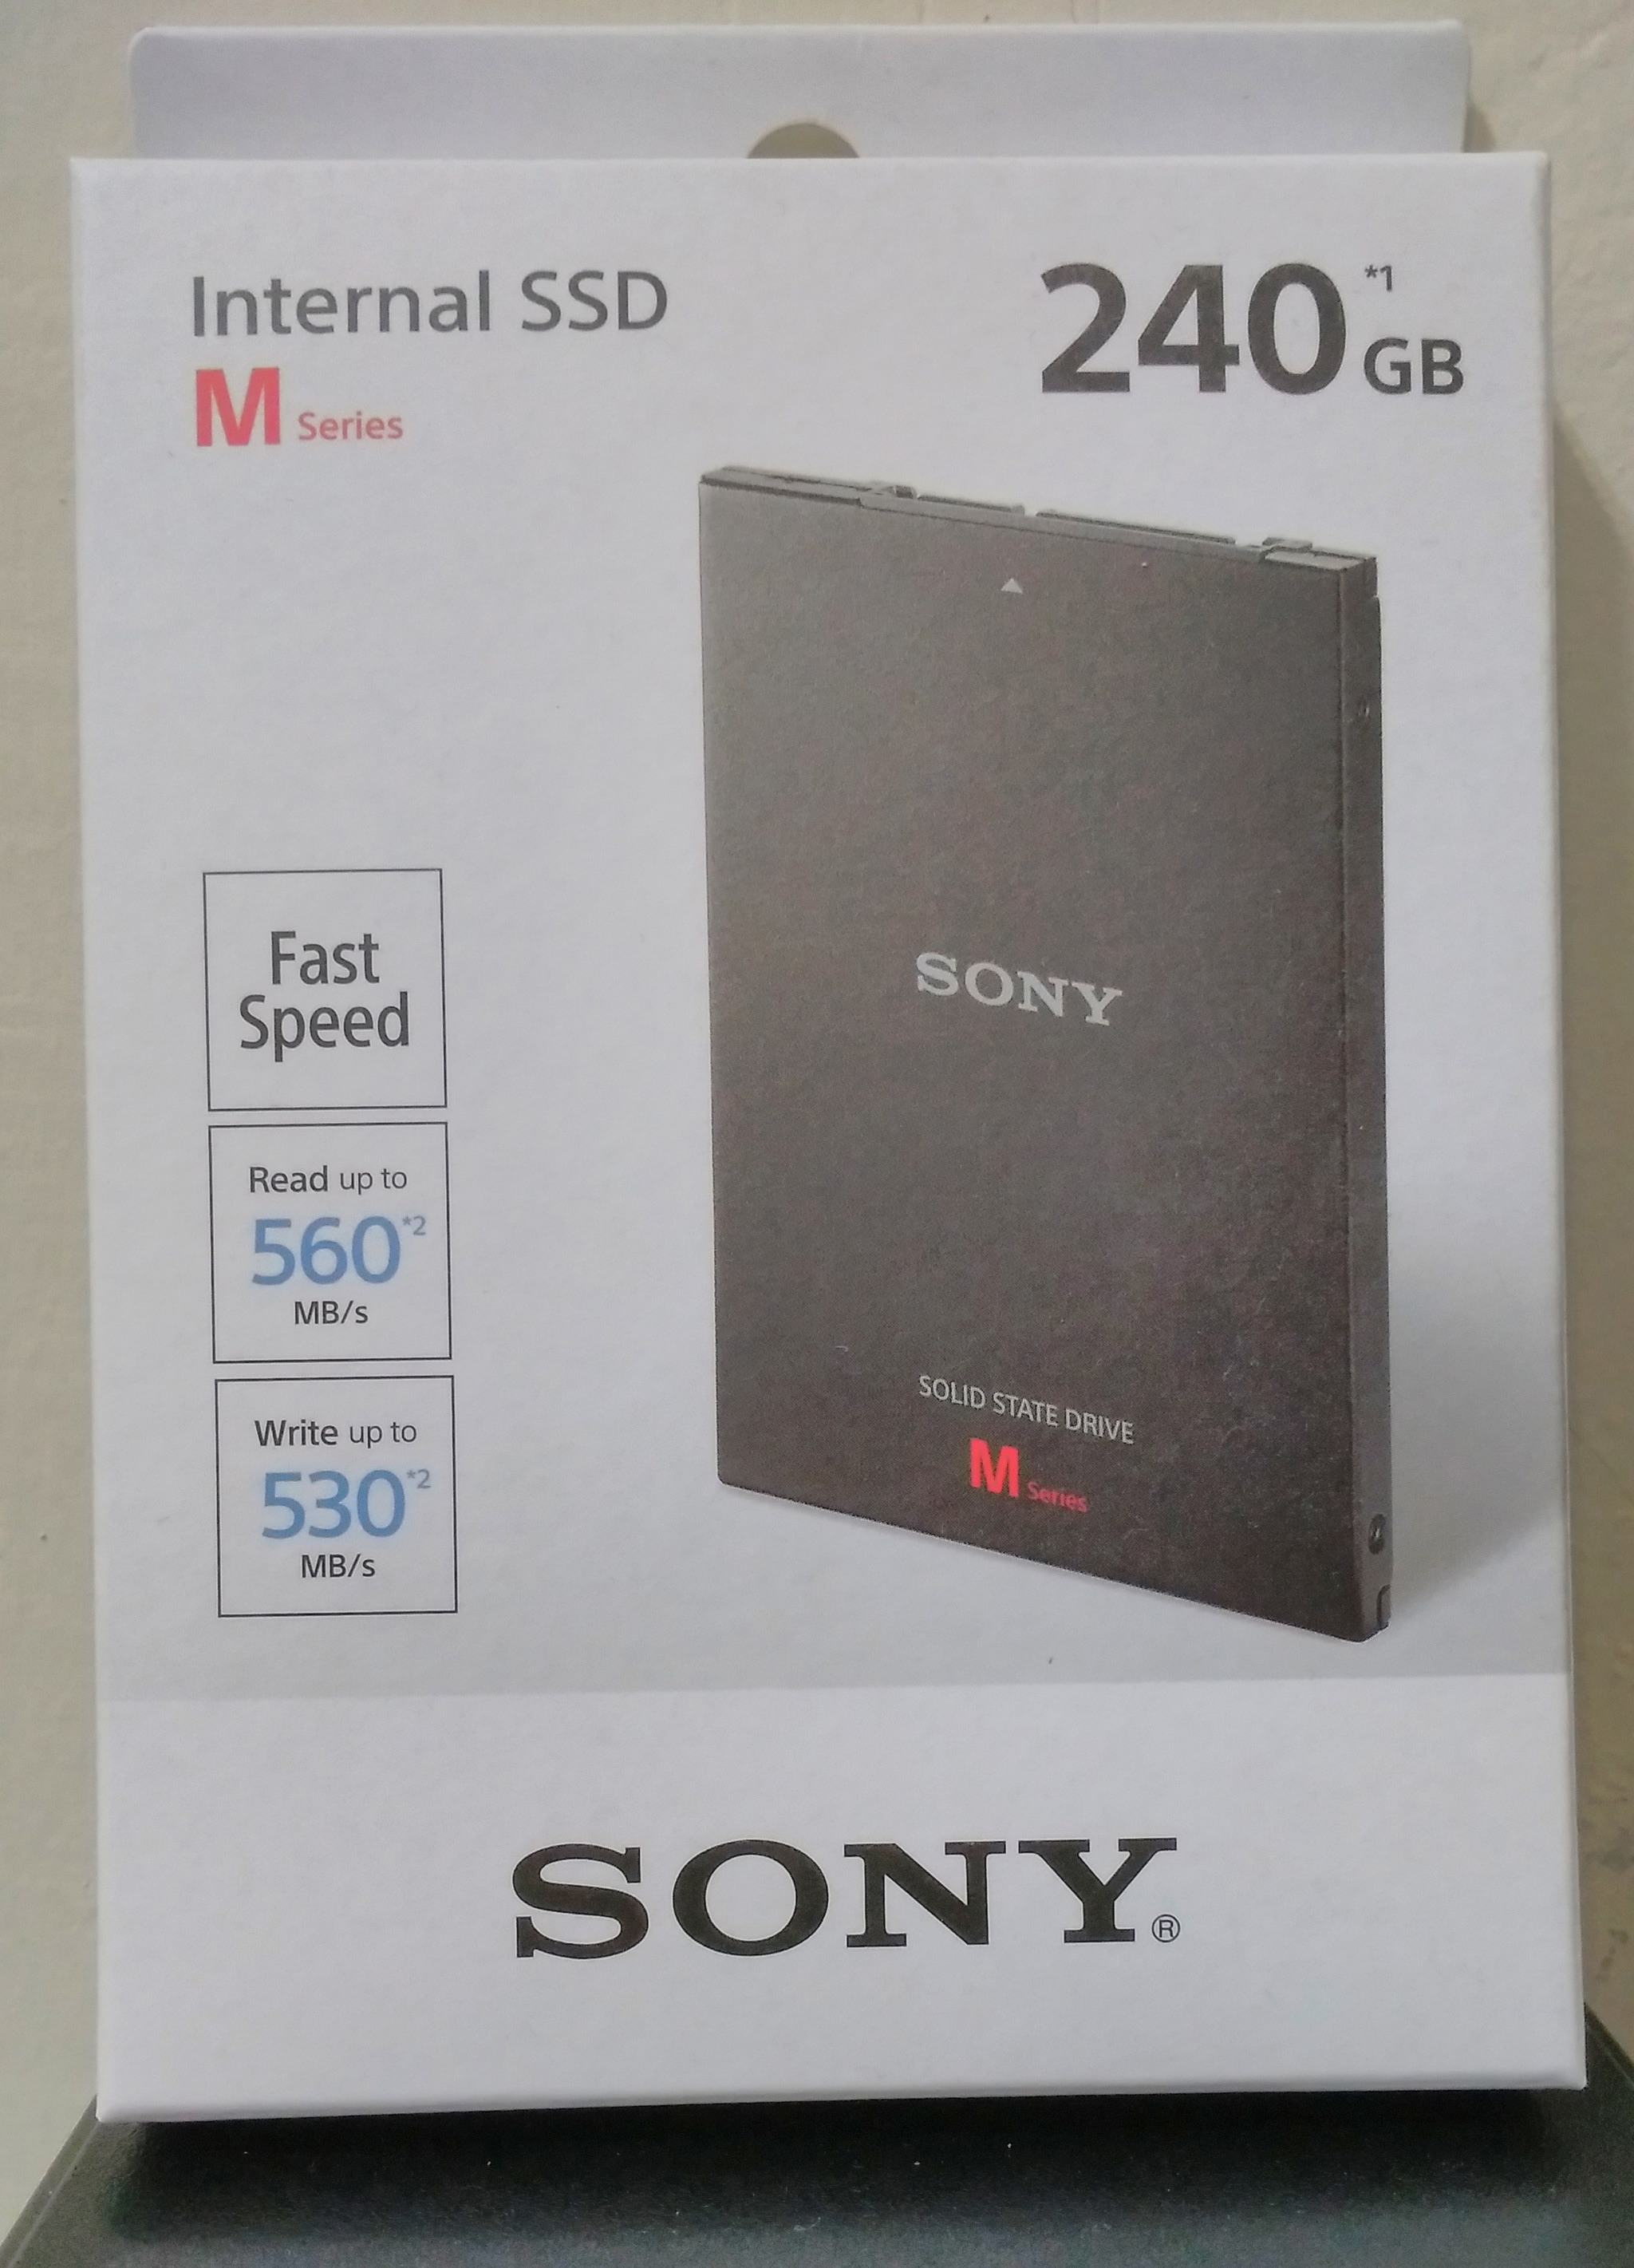 Sony SLW-MG2 240GB (R:560MB / S W:530 MB / S)